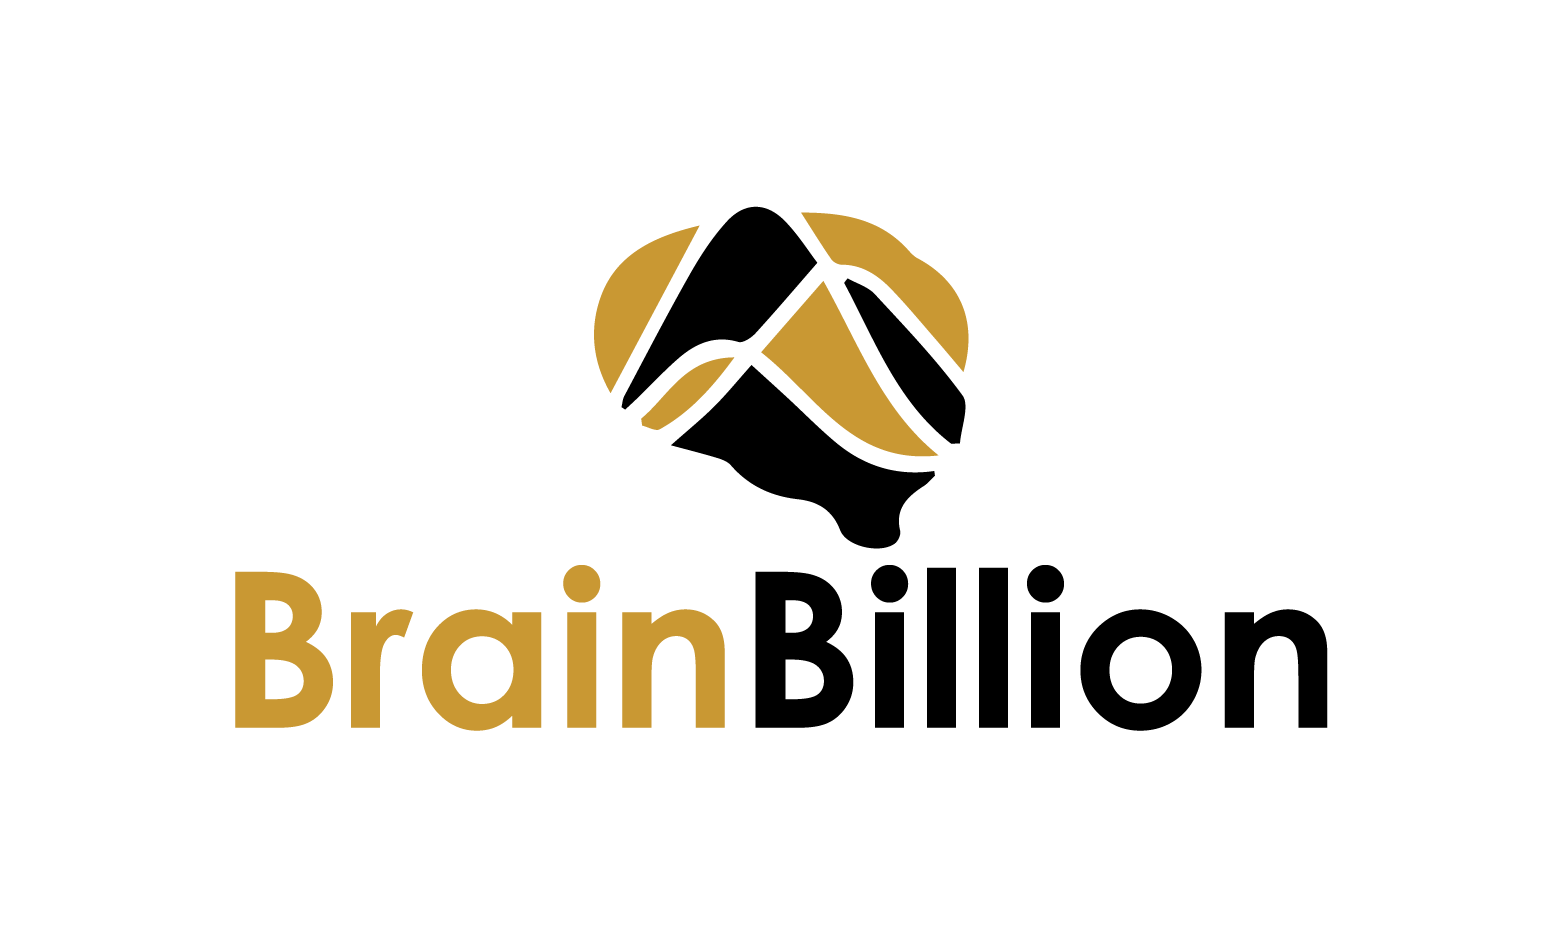 BrainBillion.com